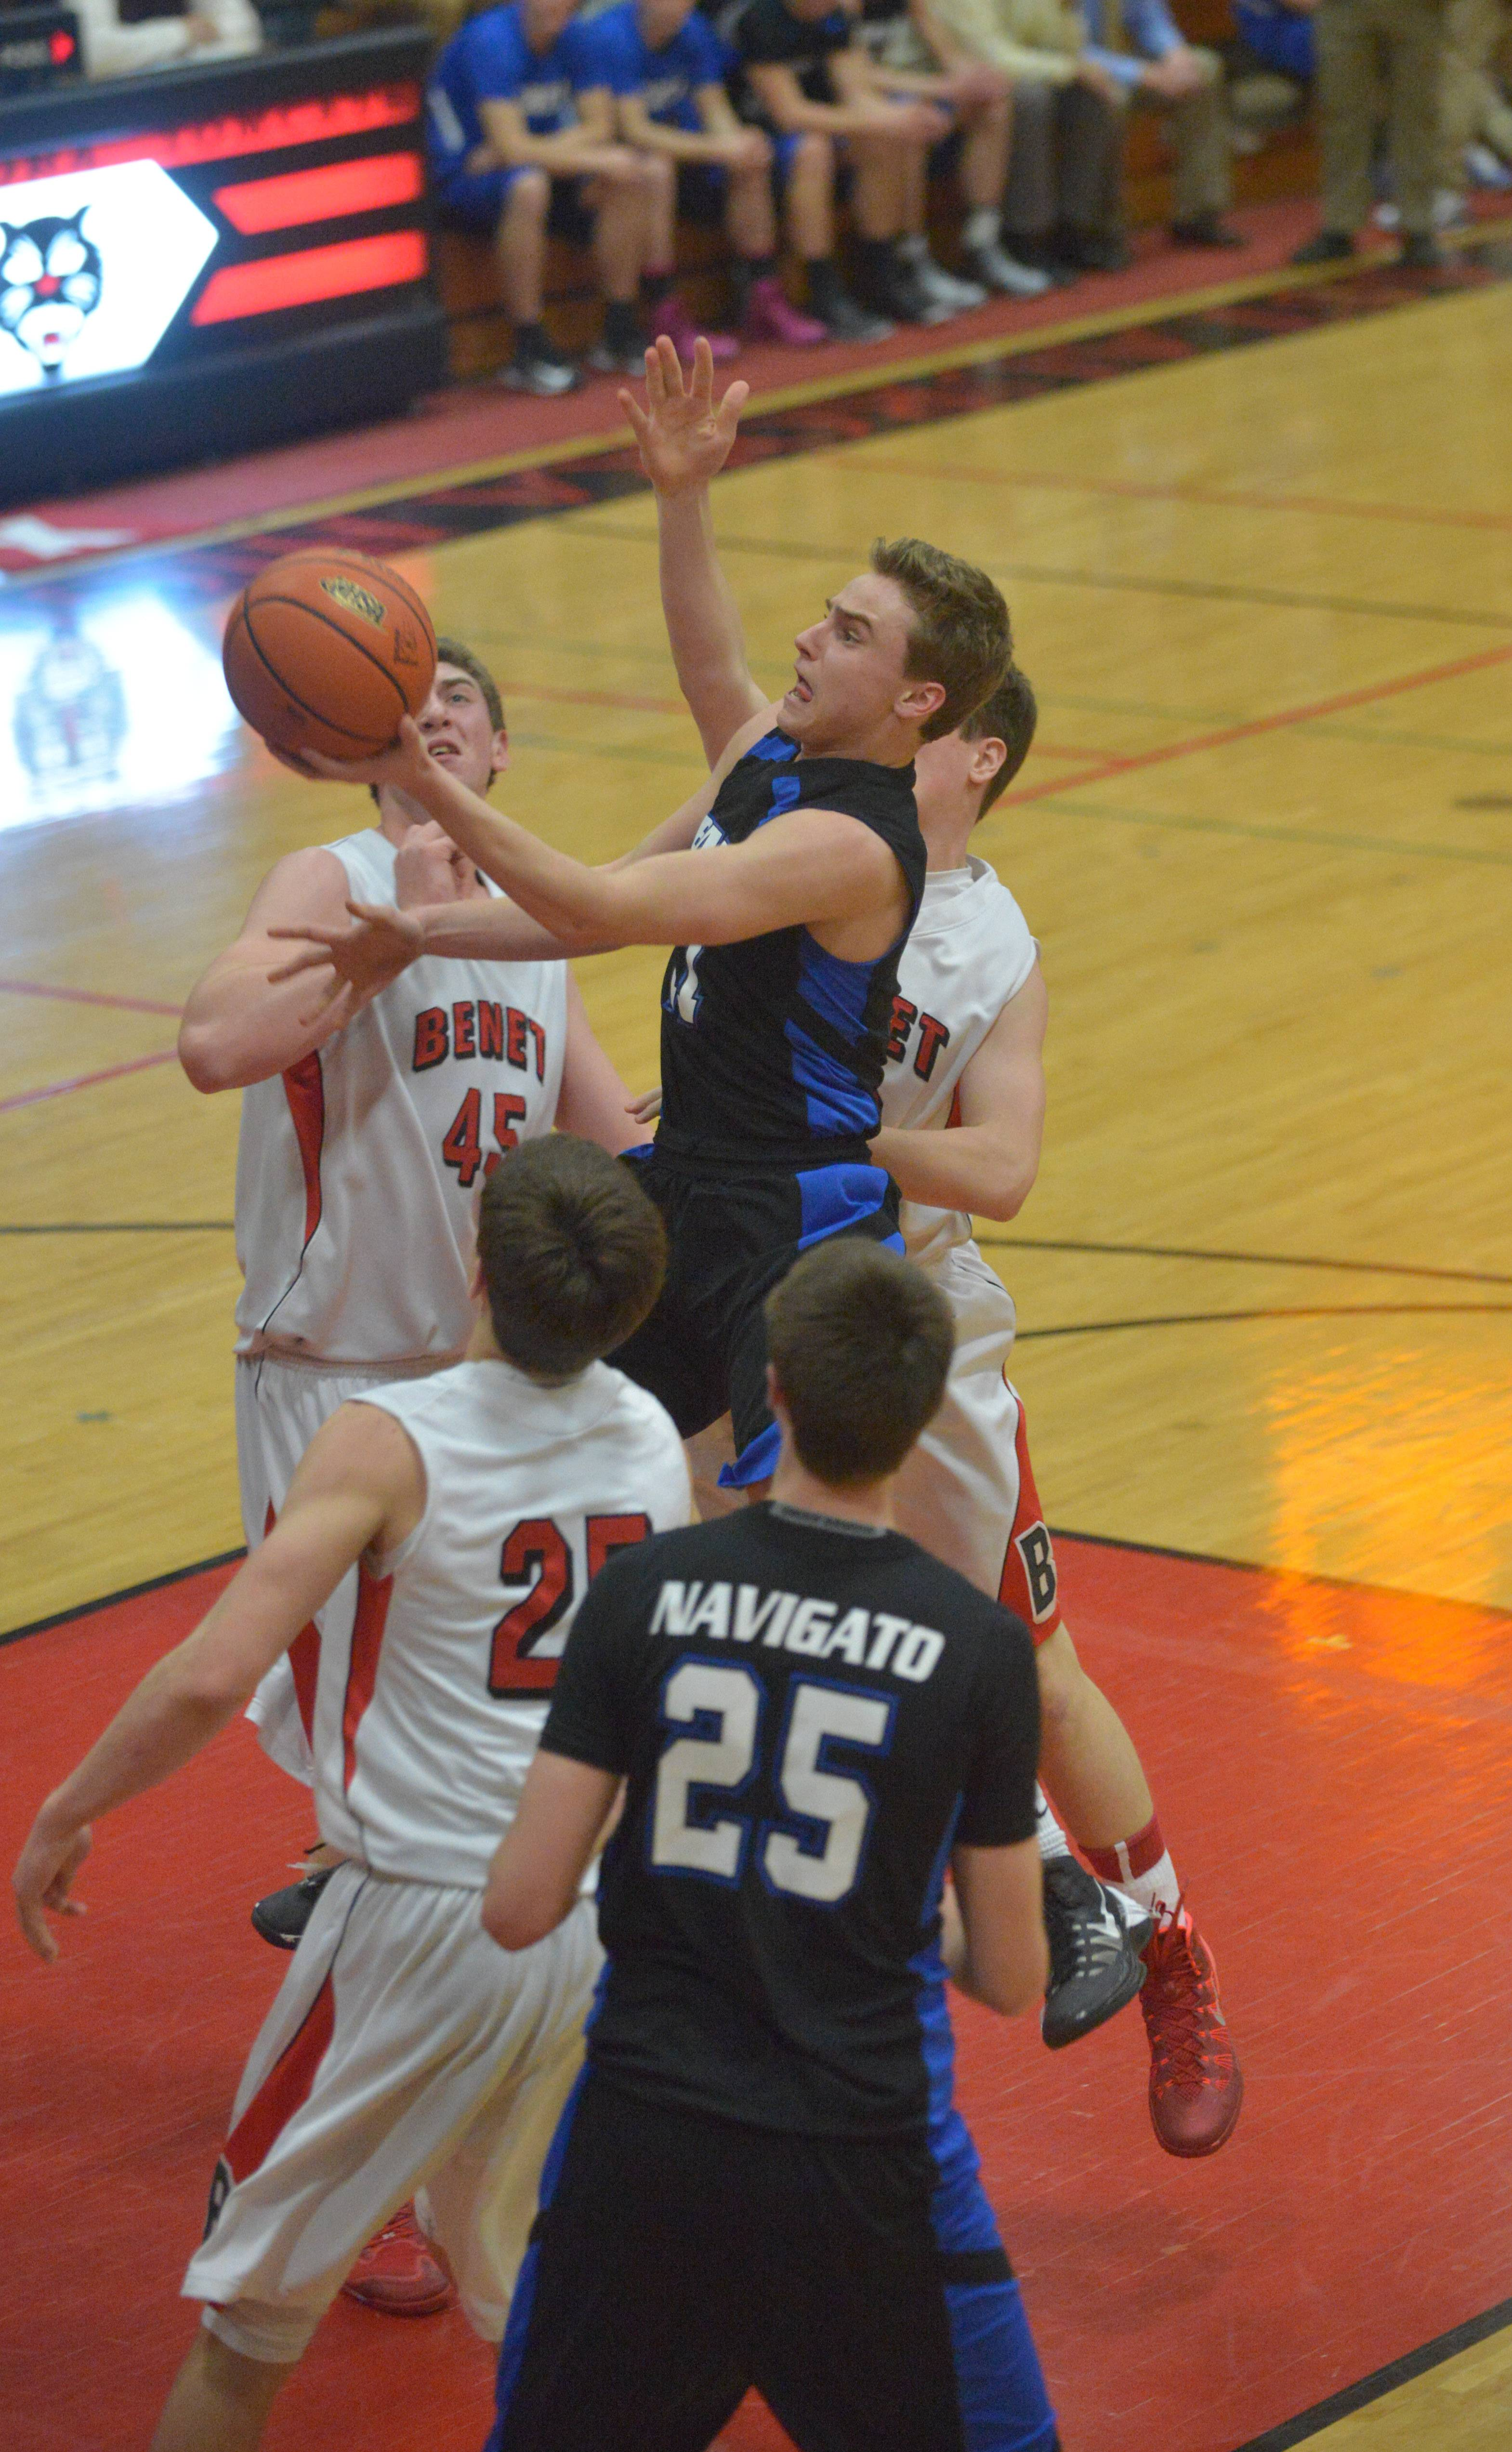 Benet played Geneva at East Aurora High School Friday, March 14, for a boys basketball secional final game.